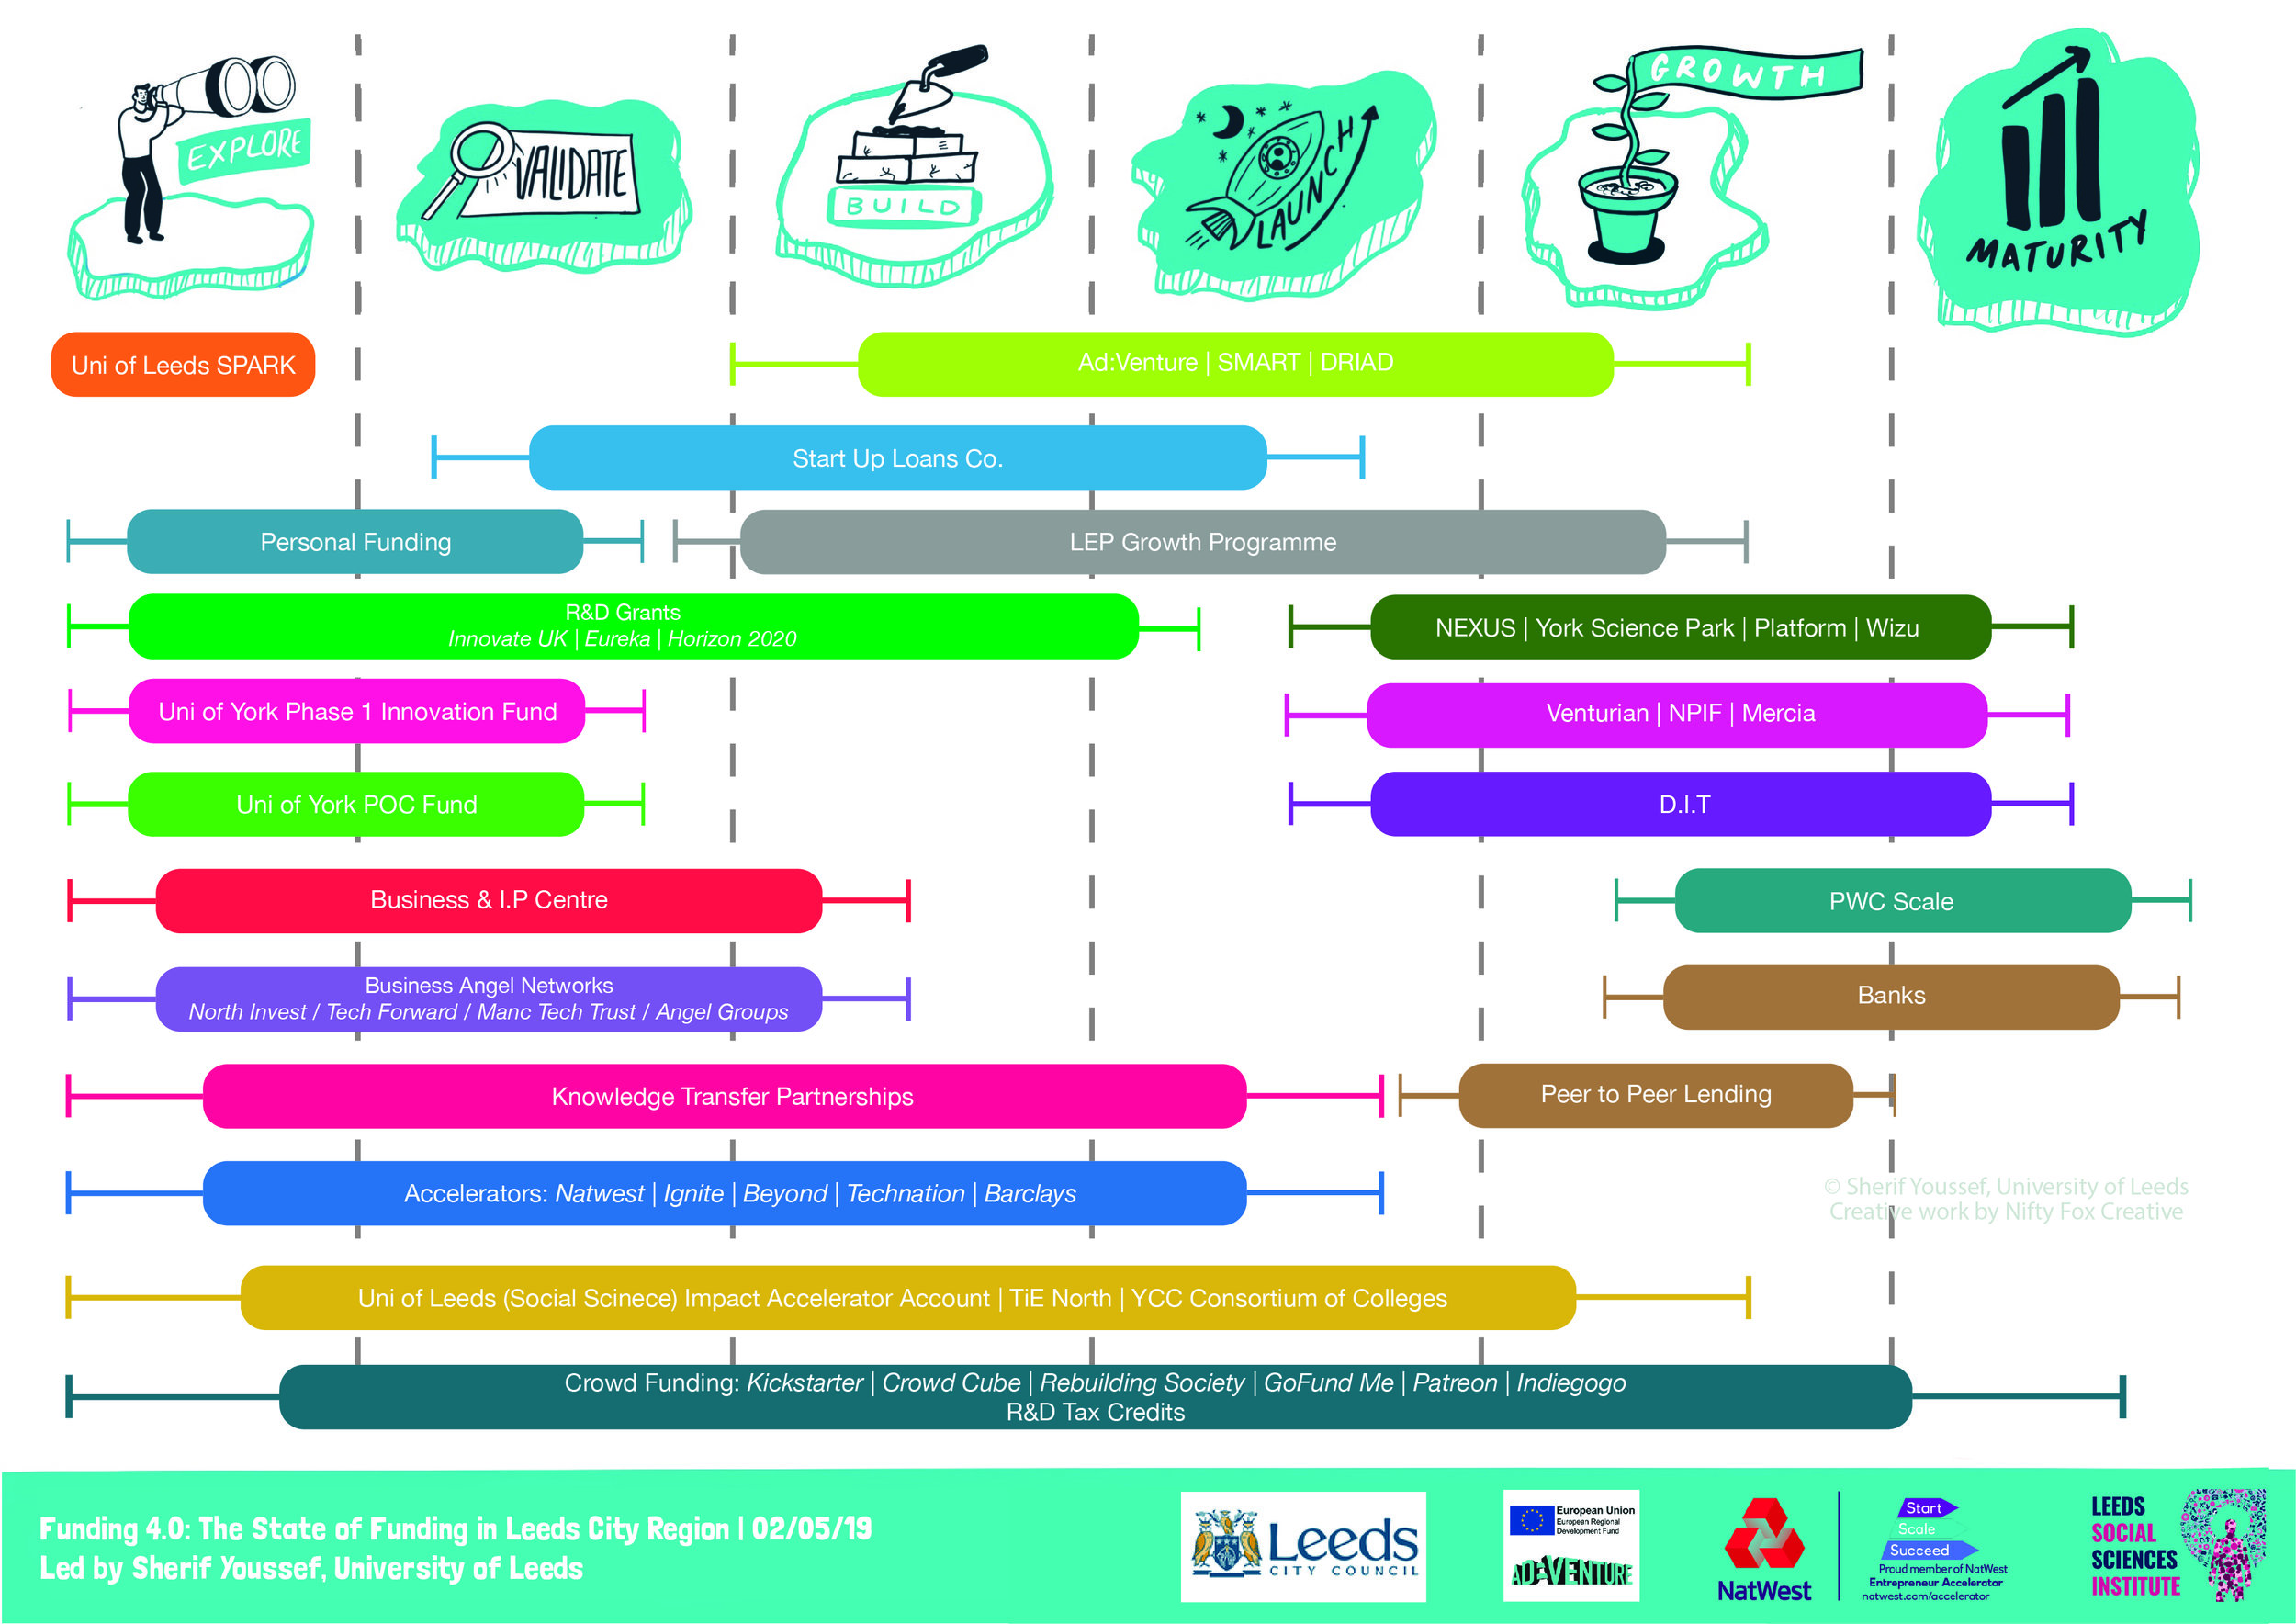 Funding Map developed for early stage entrepreneurs